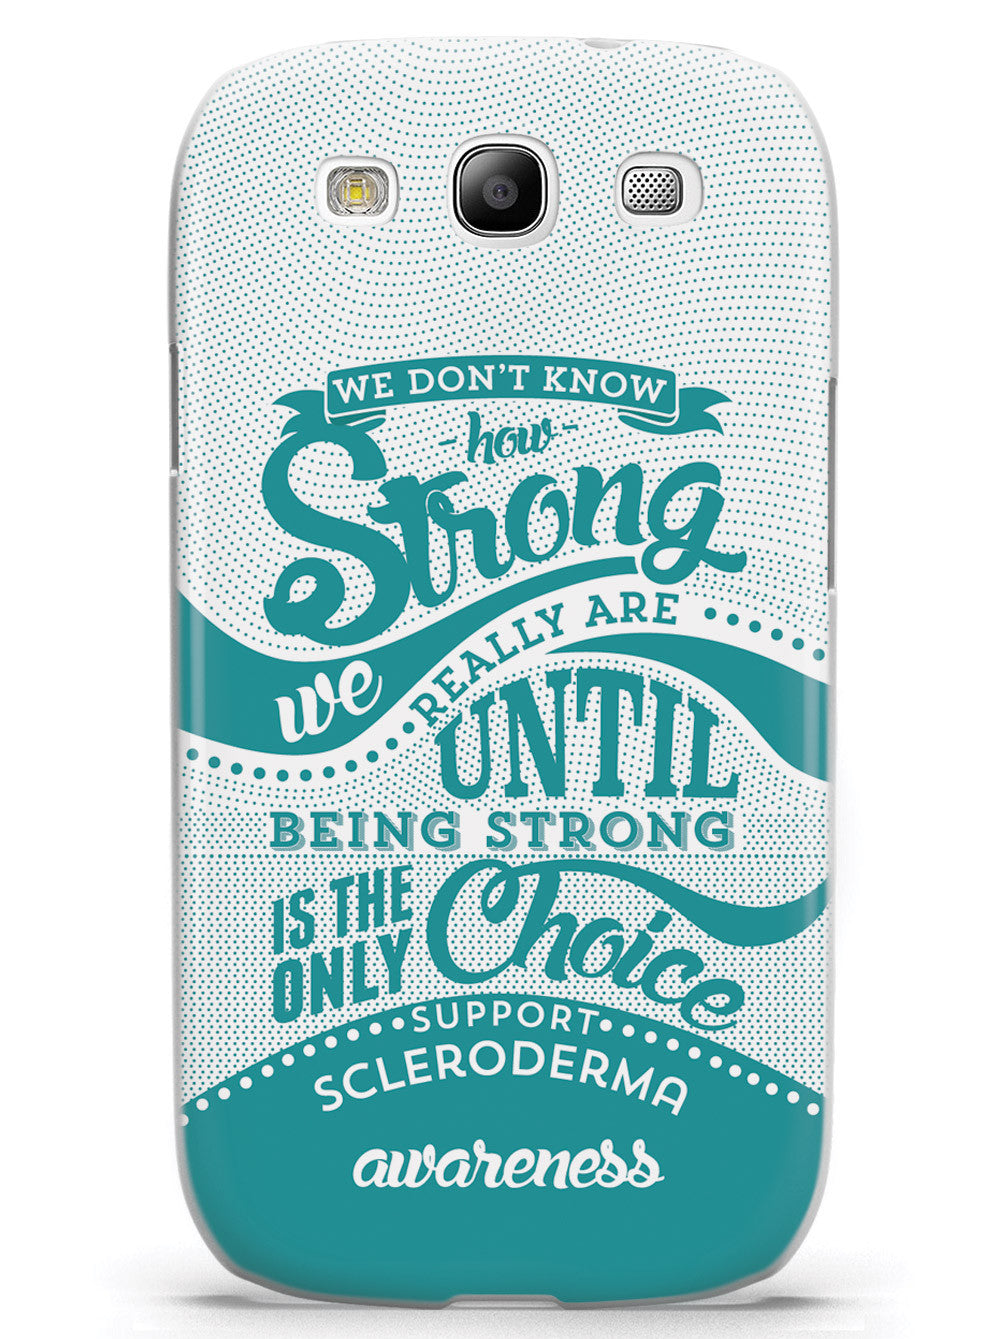 Scleroderma Awareness - How Strong Case